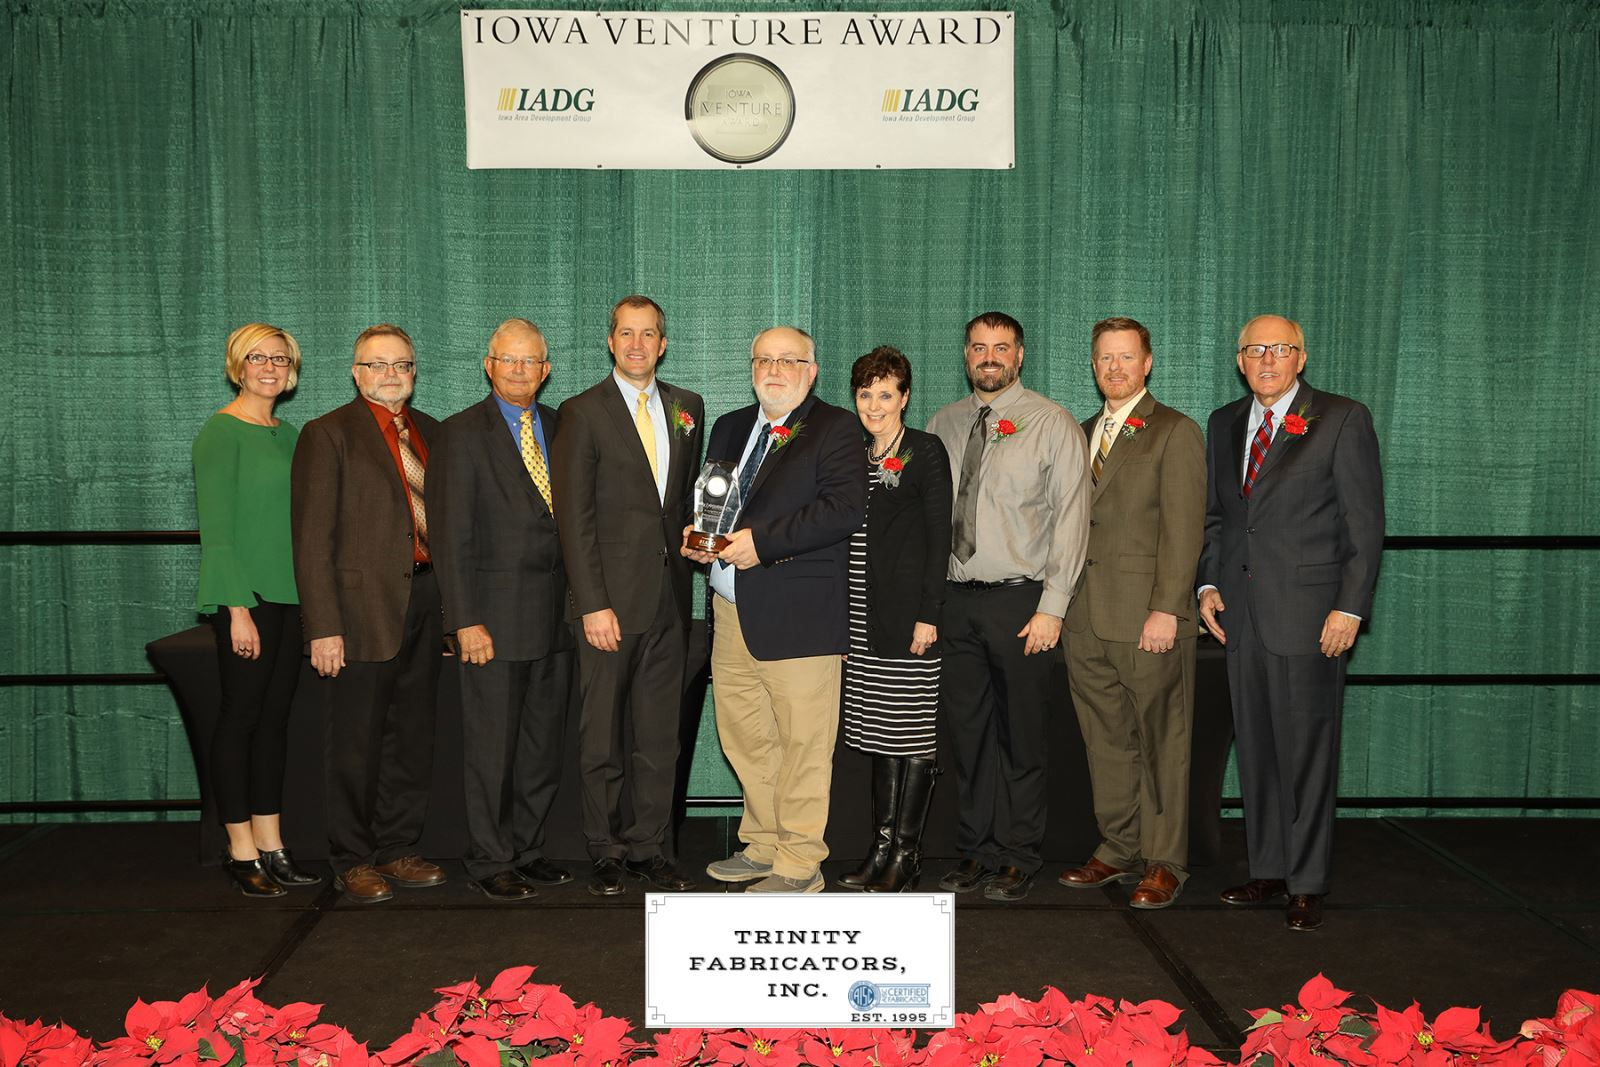 Trinity Fabricators Recipient of 2018 Iowa Venture Award